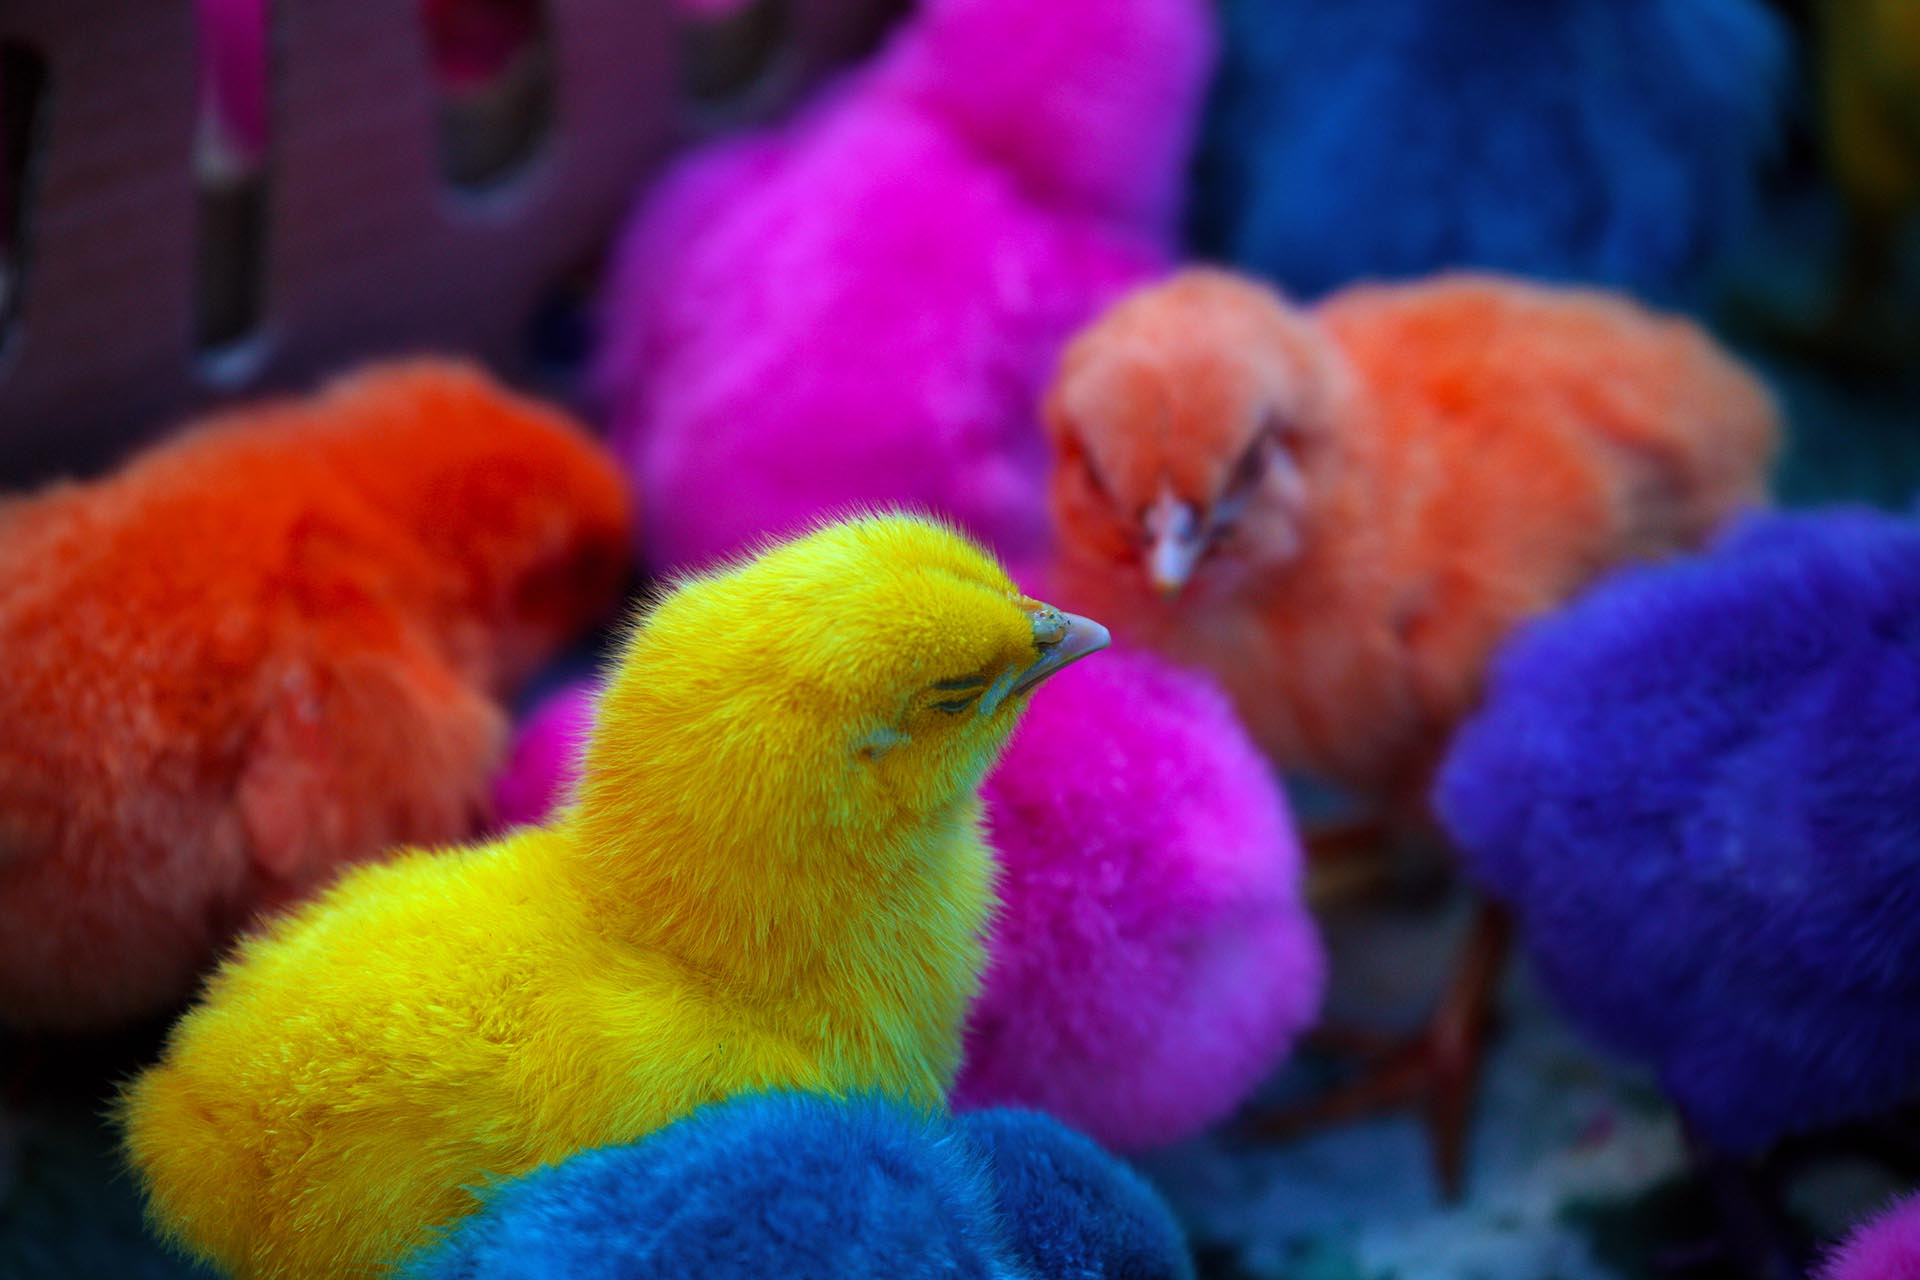 A close up of a box of brightly-colored chicks.